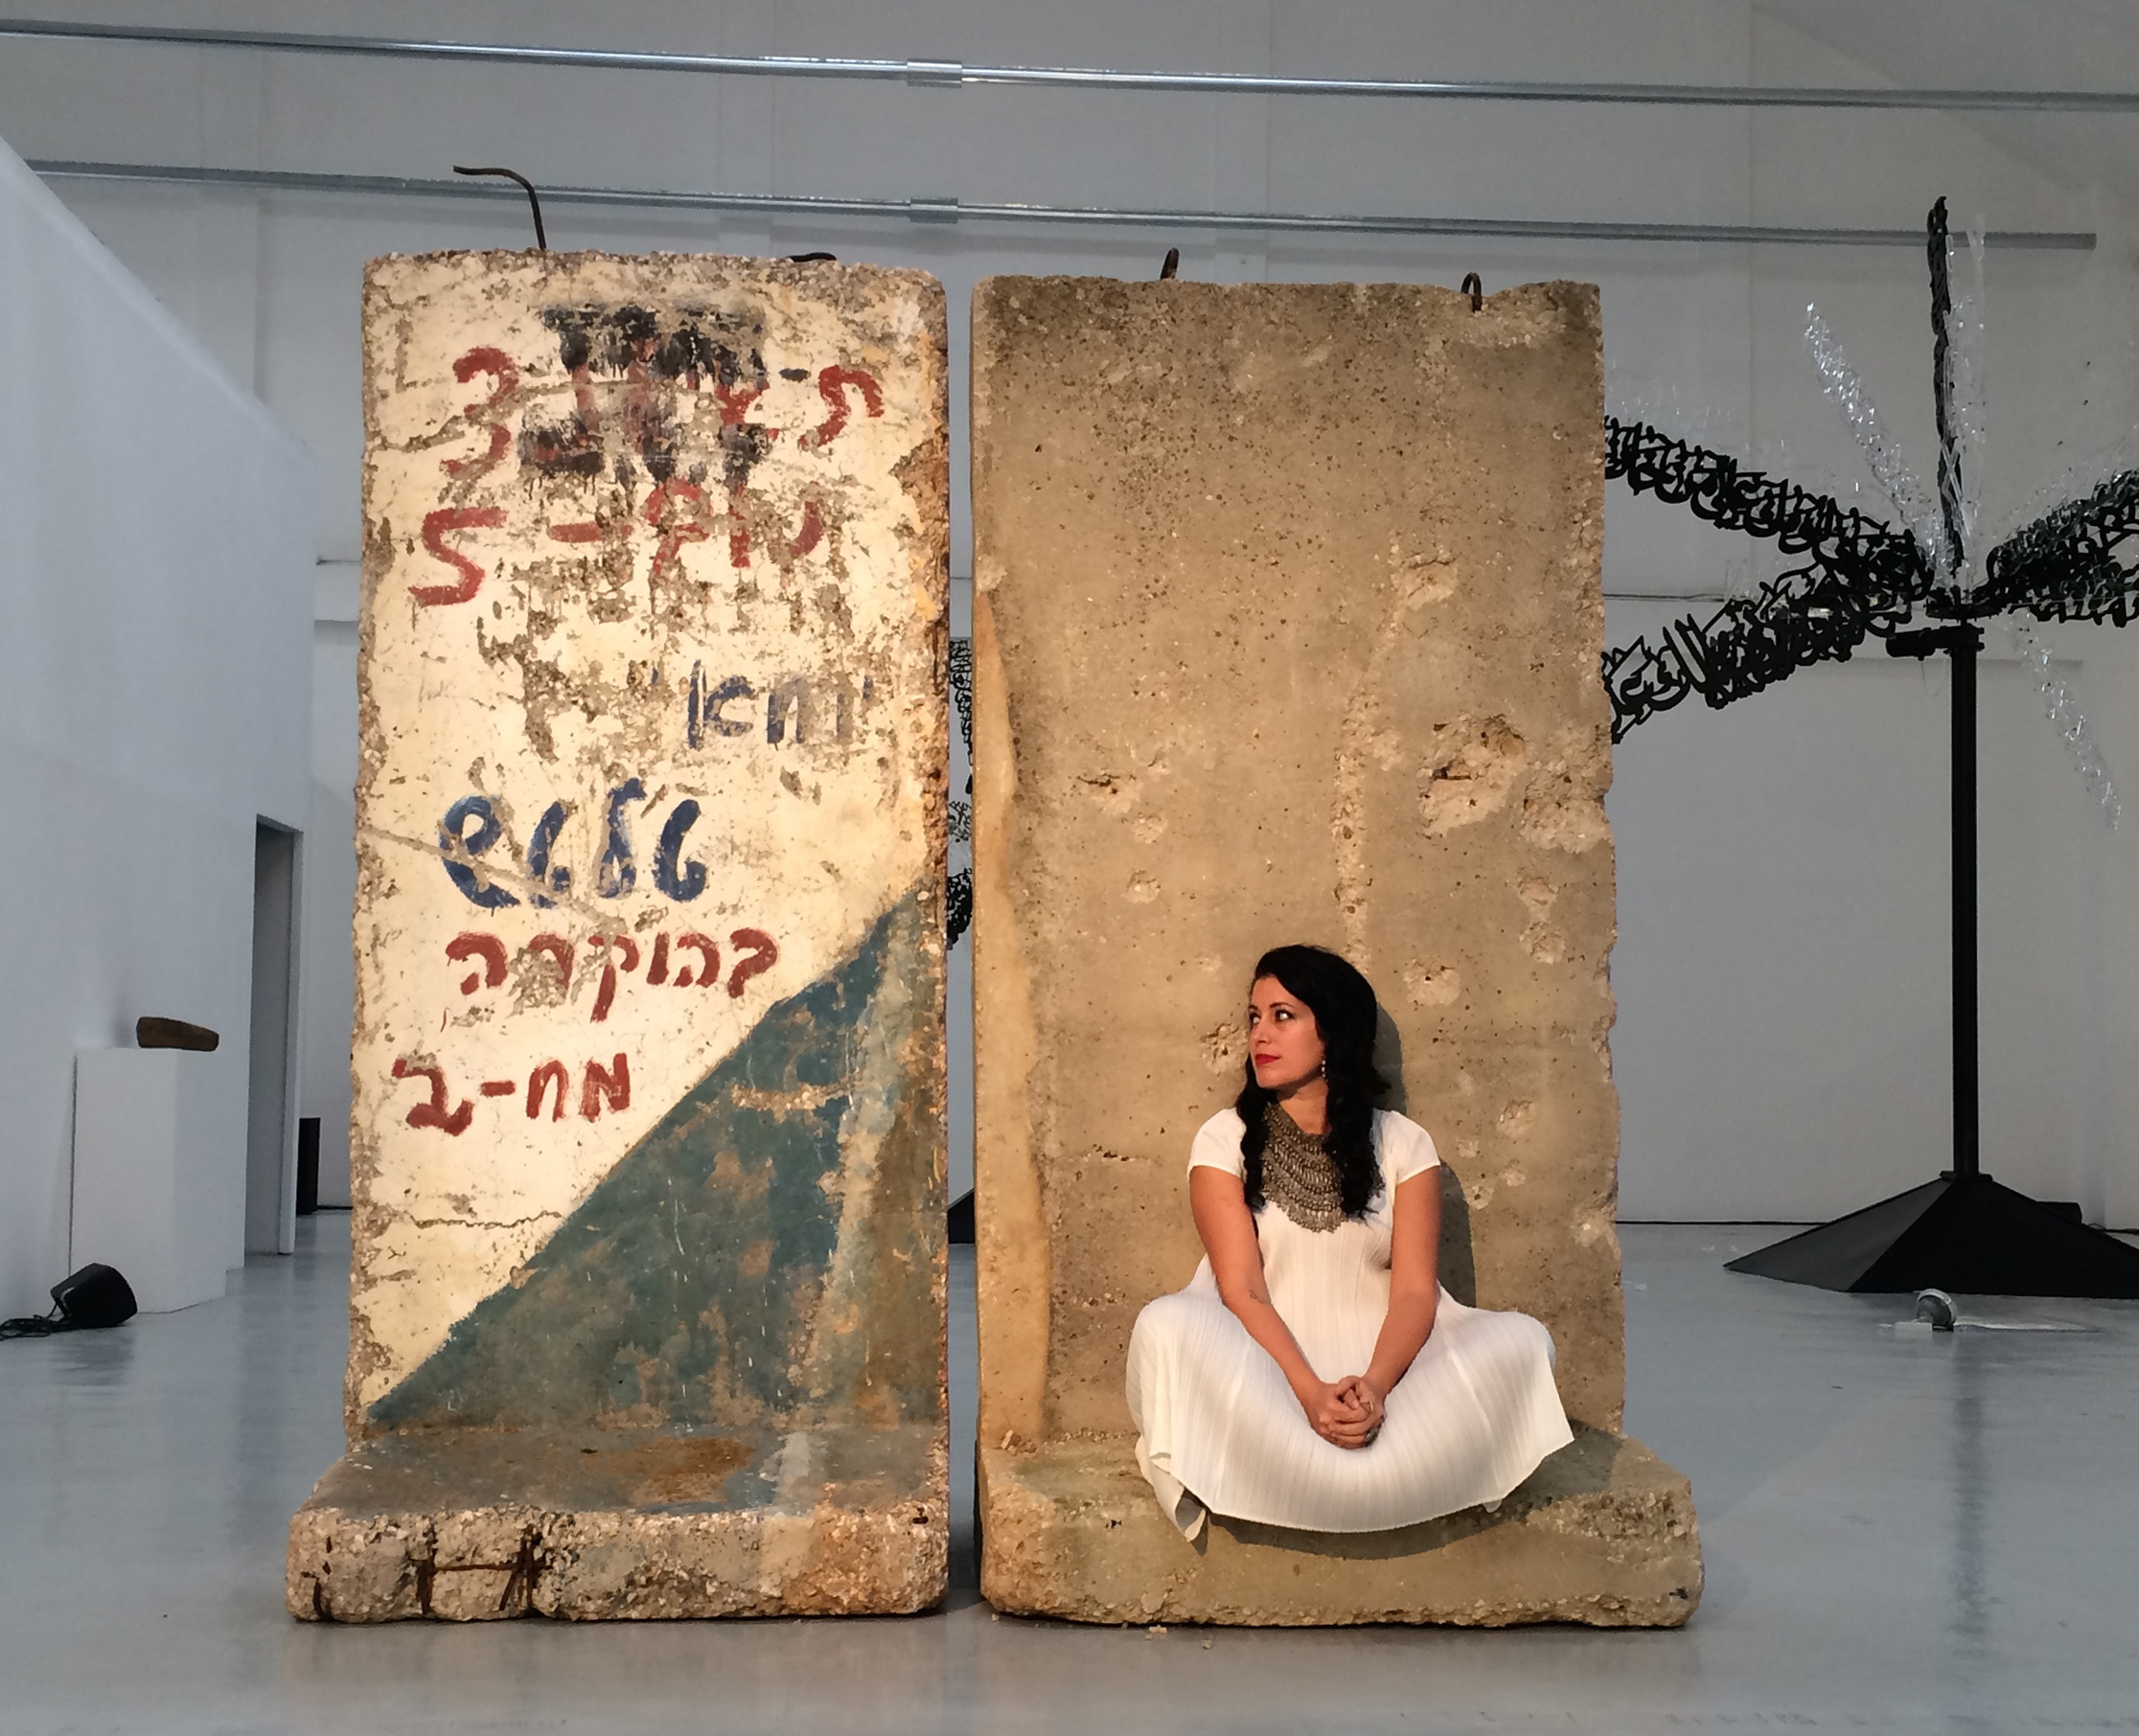 Zena el Khalil poses in the midst of her new exhibit, which makes the rubble of her mother and father's homes in Lebanon into beautiful art. Photo: Eva Zayat